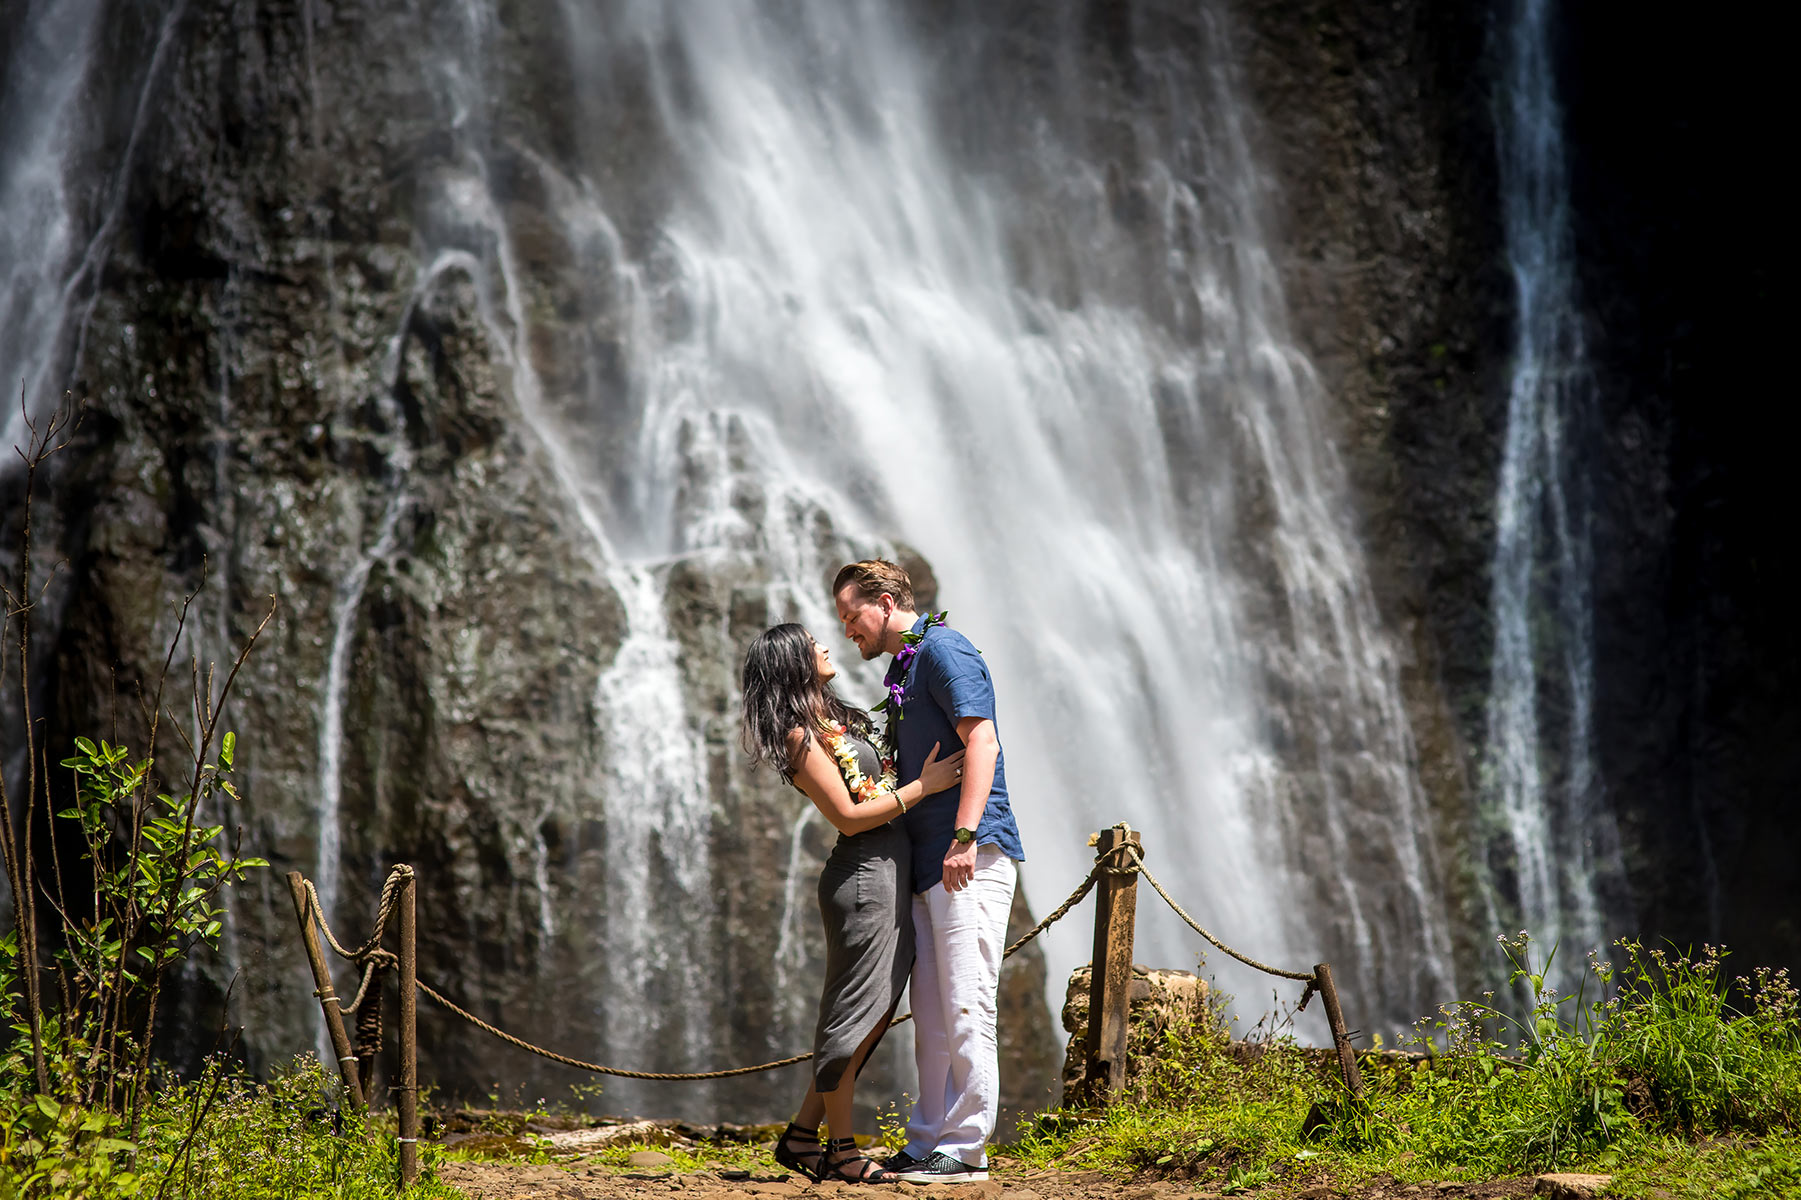 Waterfall, helicopter tour, surprise proposal photographed on Kauai.